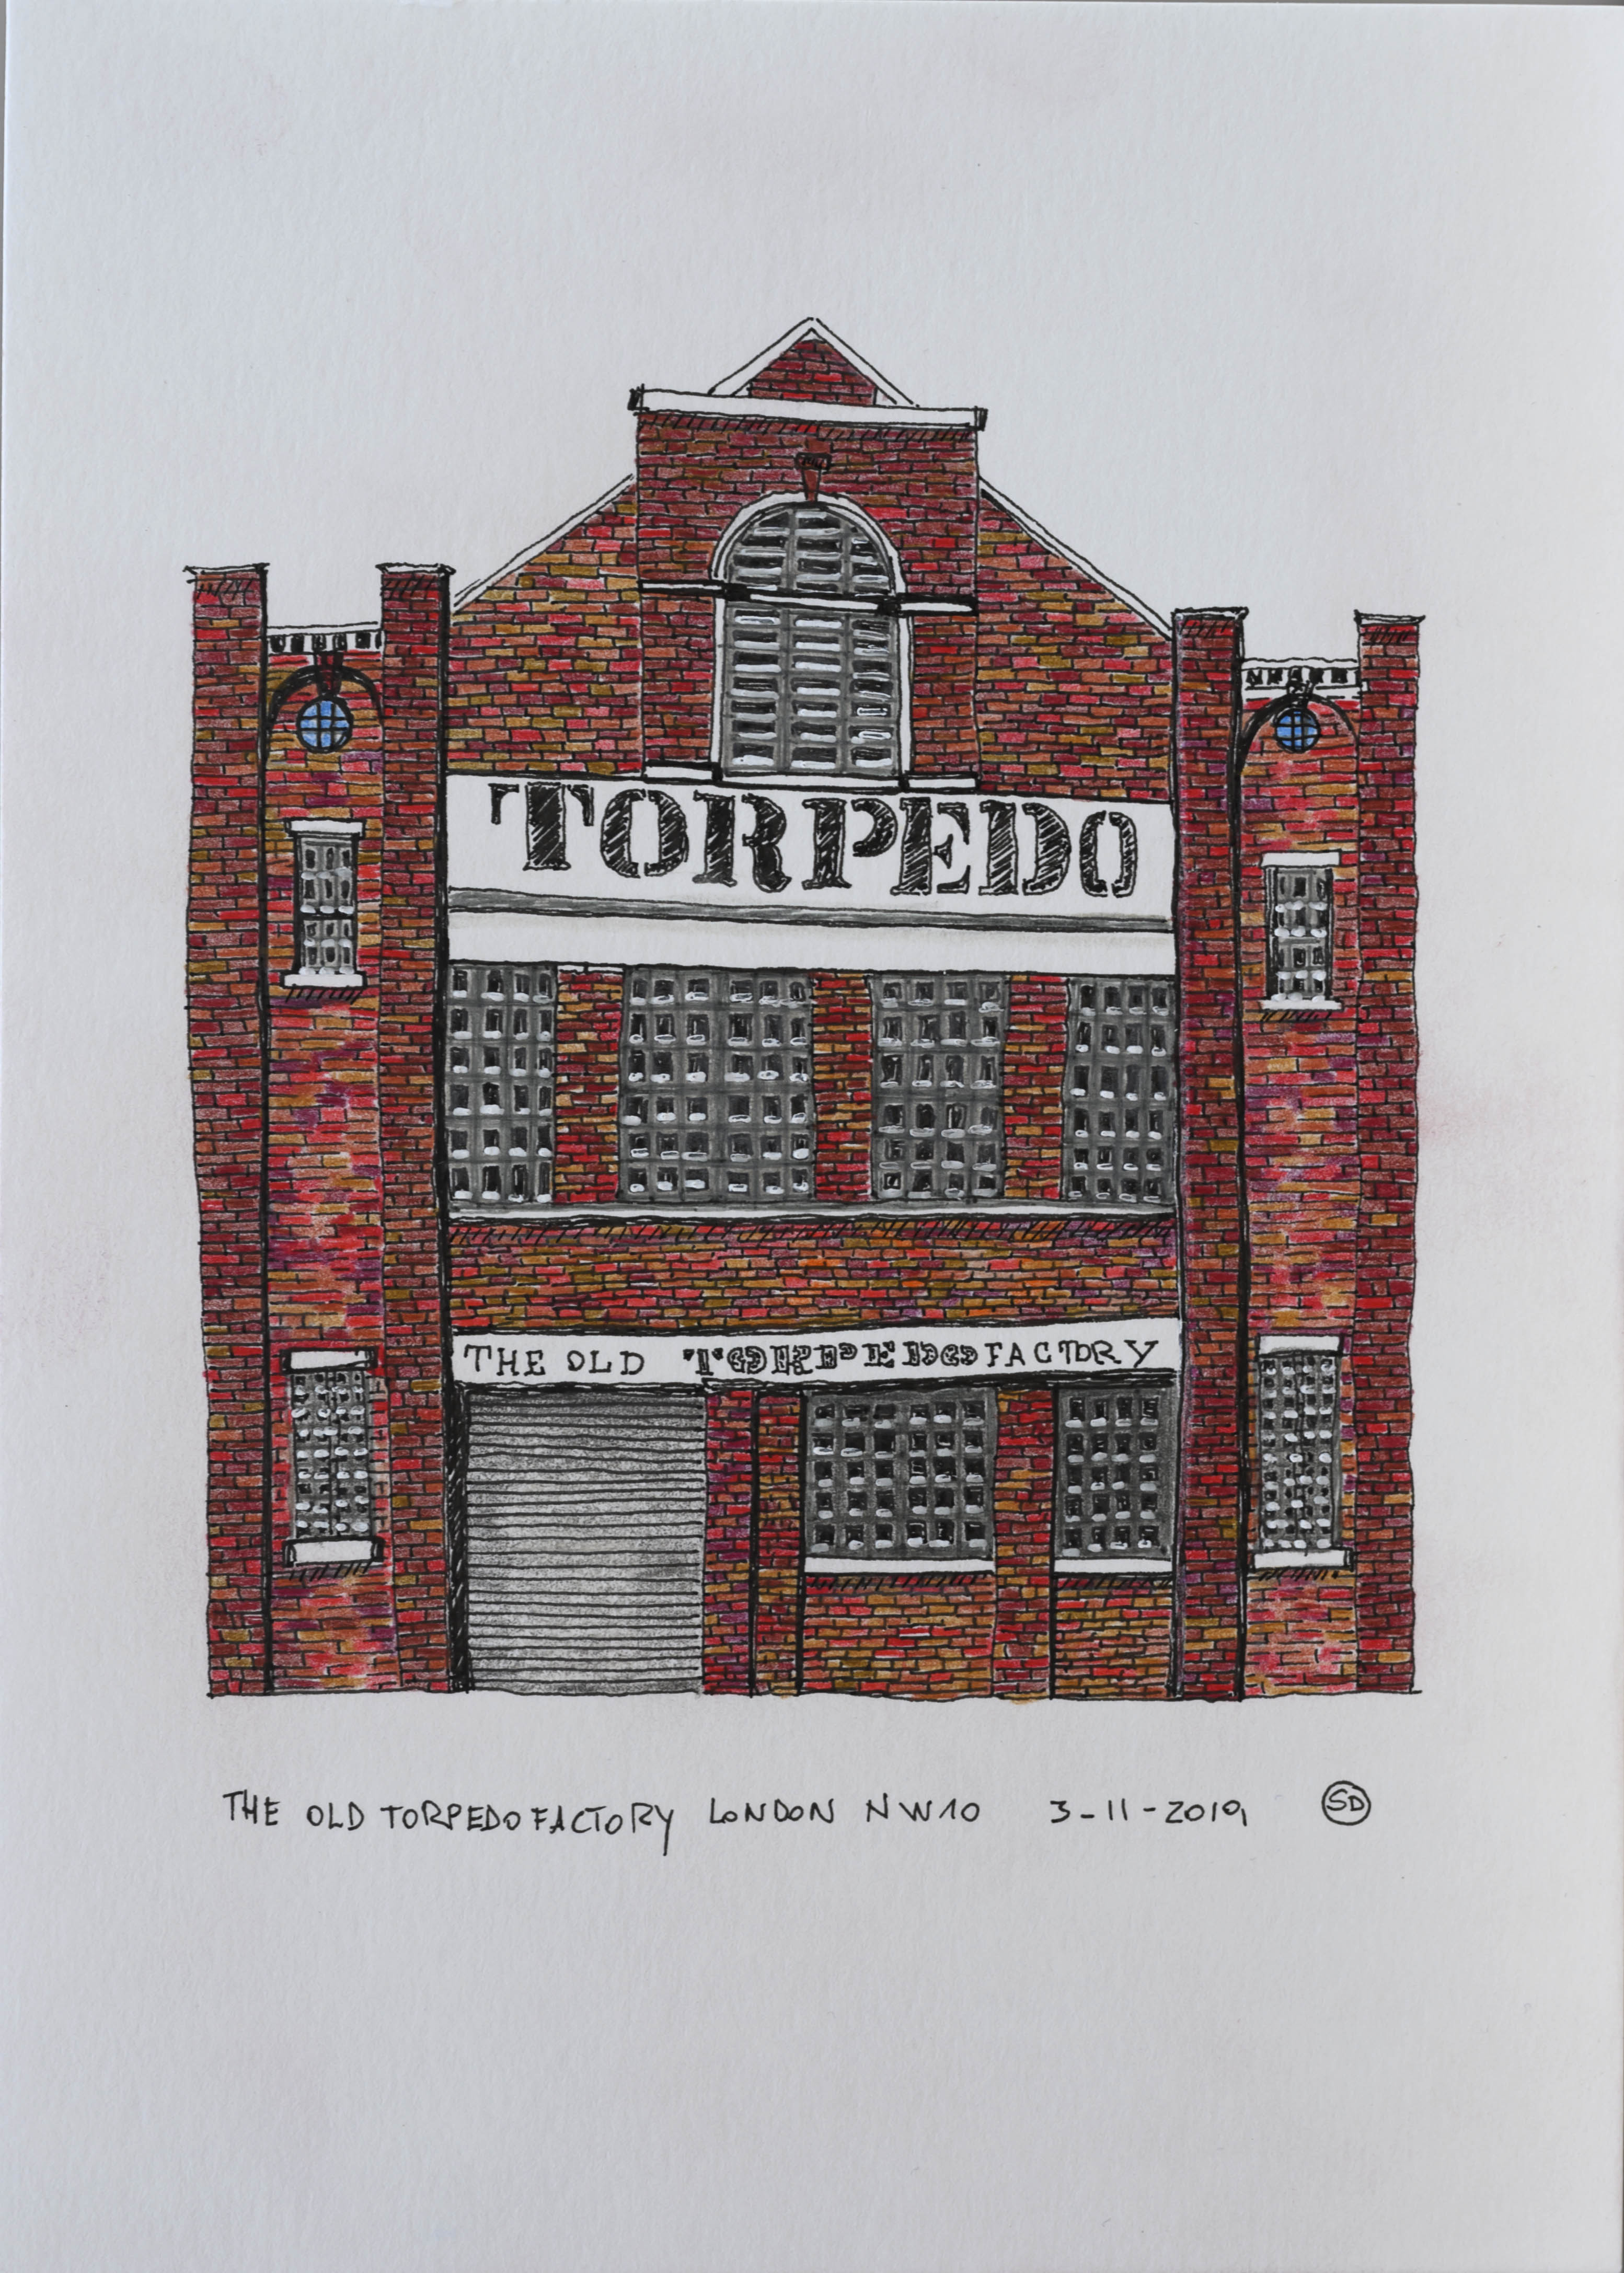 The Old Torpedo Factory